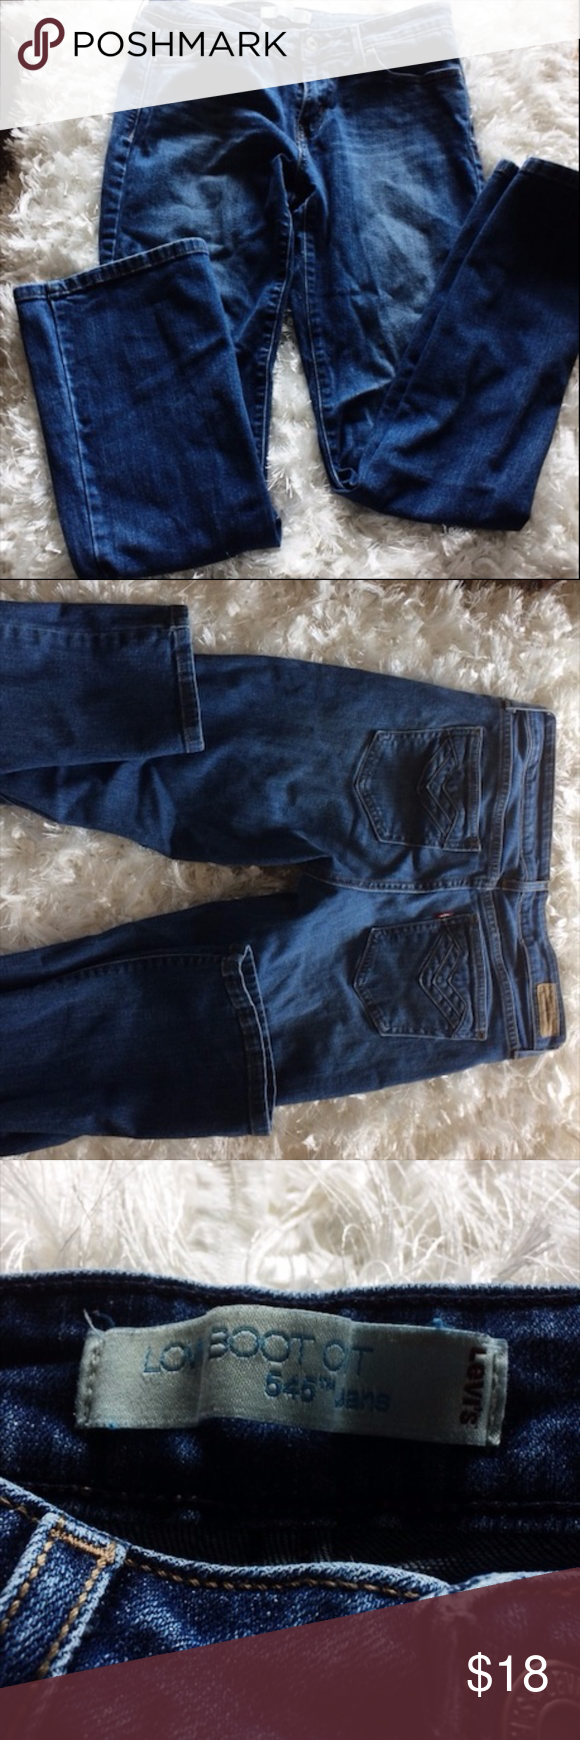 """Levi Bootcut Blue Jeans Women's 8 Medium Low bootcut. 646 jeans. Used but good condition. 99% cotton. 1% elastane. Made in Sri Lanka. Red tag on back pockets. Brown label in back does have some fading. Laid flat the aist is 15.5"""", length is 38"""" inseam is 30"""". All sizes approximate. Weighs 1 lbs. 4 oz. levis Pants"""